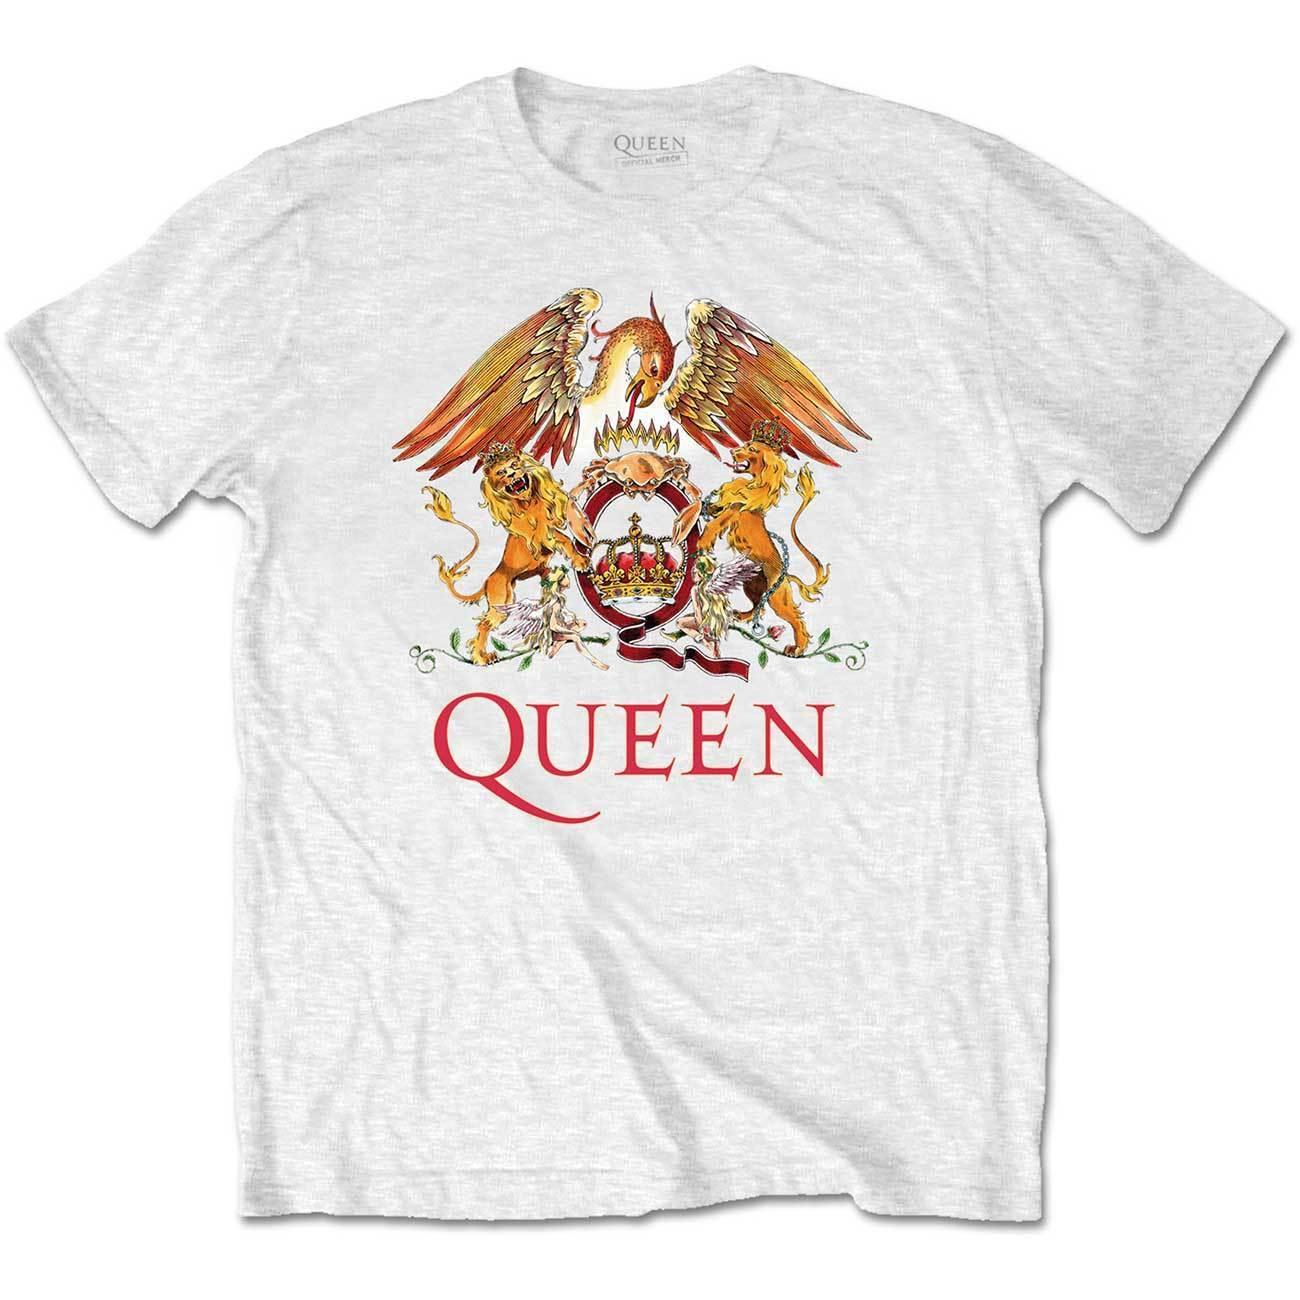 a86084edb9 Queen White Crest Freddie Mercury Brian May Official Tee T Shirt Mens  Unisex Men Women Unisex Fashion Tshirt Funny Purchase T Shirt Crazy Tee  Shirts Online ...